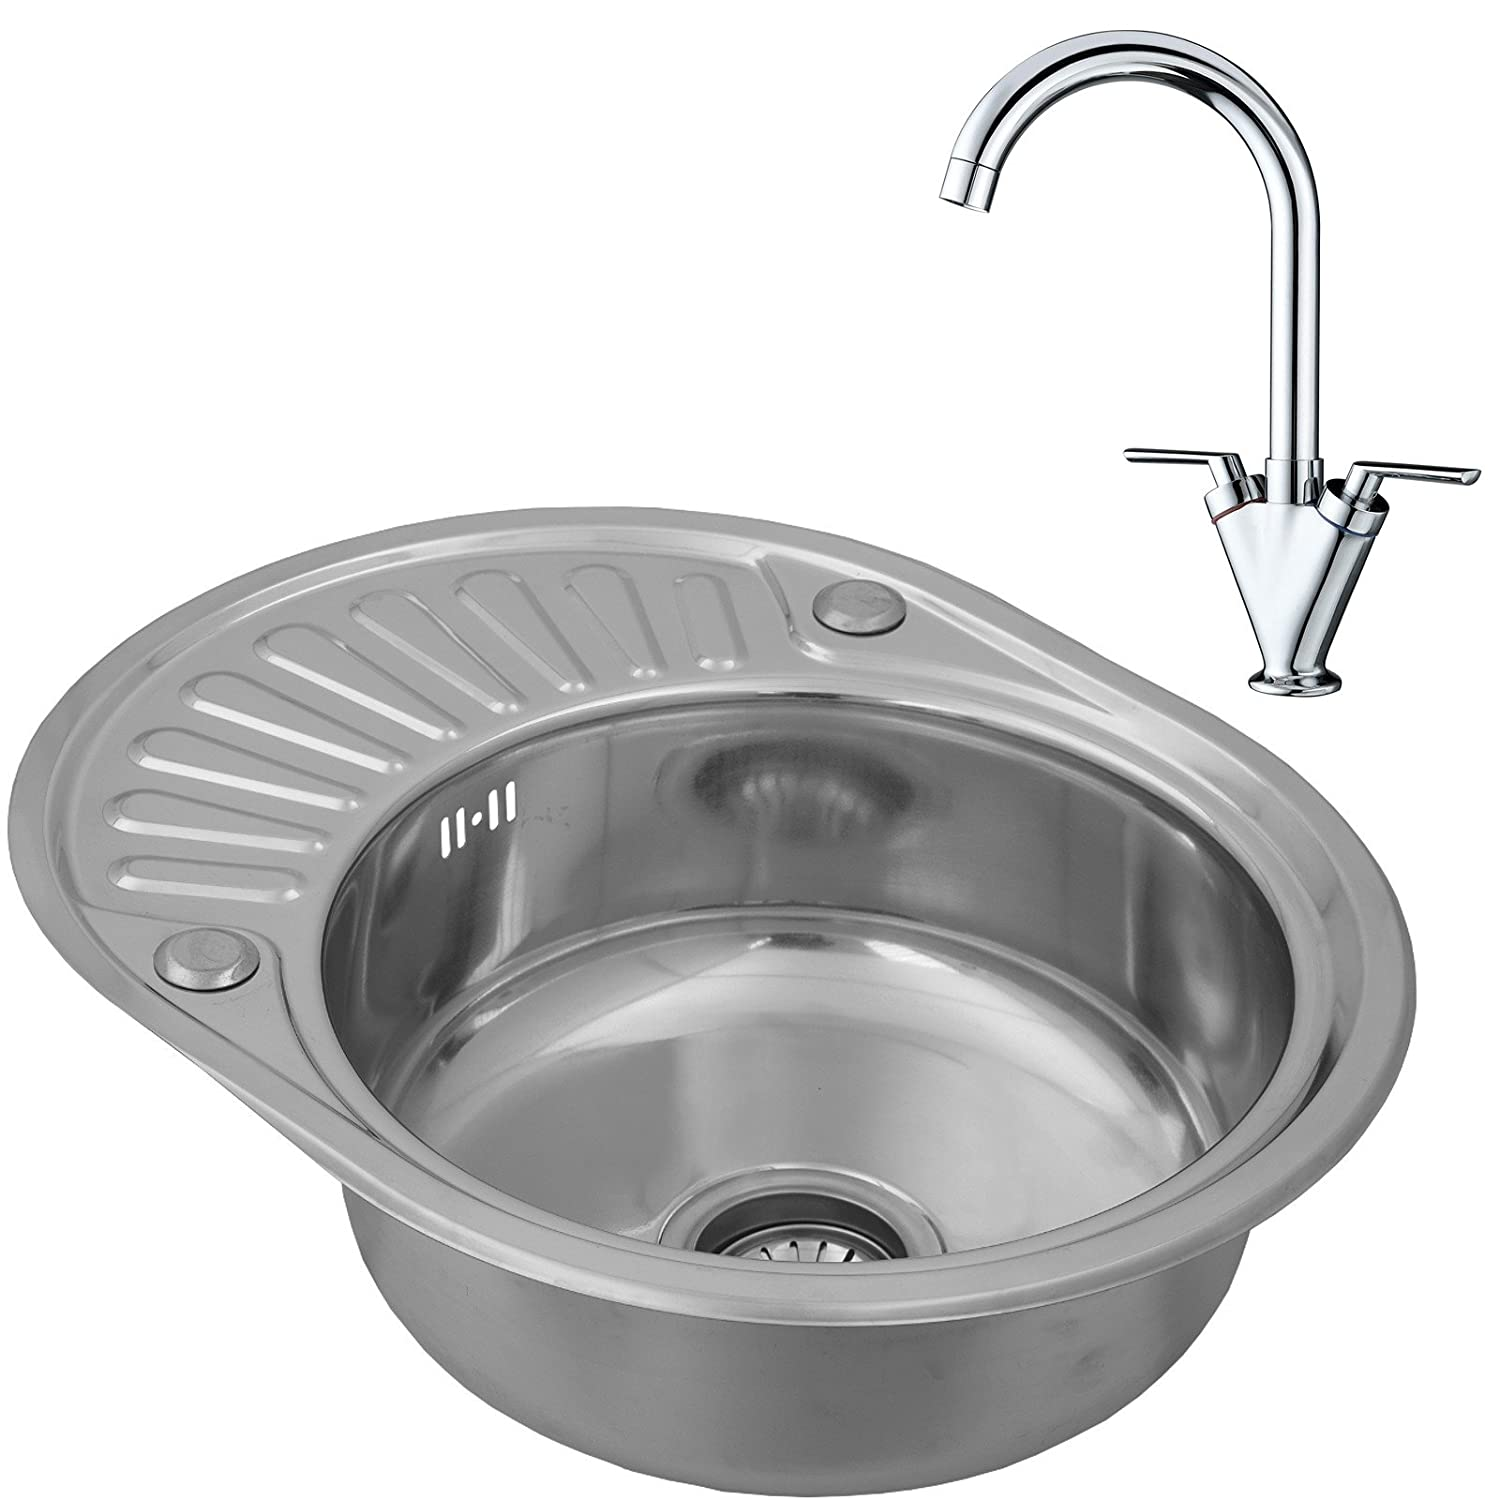 enki pact single bowl inset round stainless steel kitchen sink